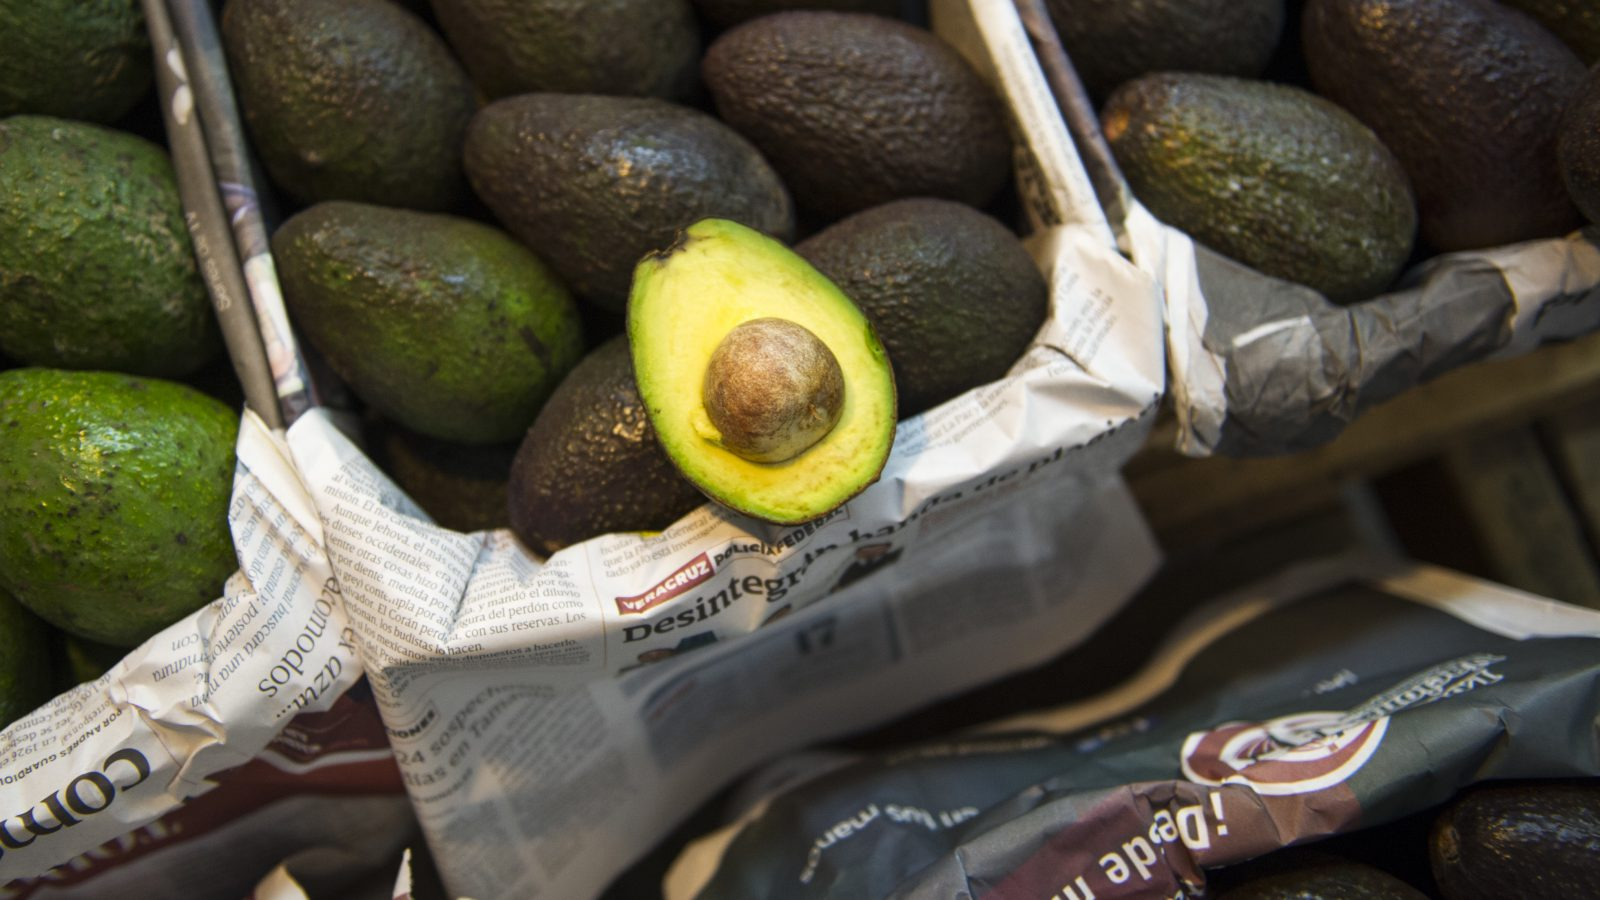 Avocados are displayed for sale in a large market in Mexico City